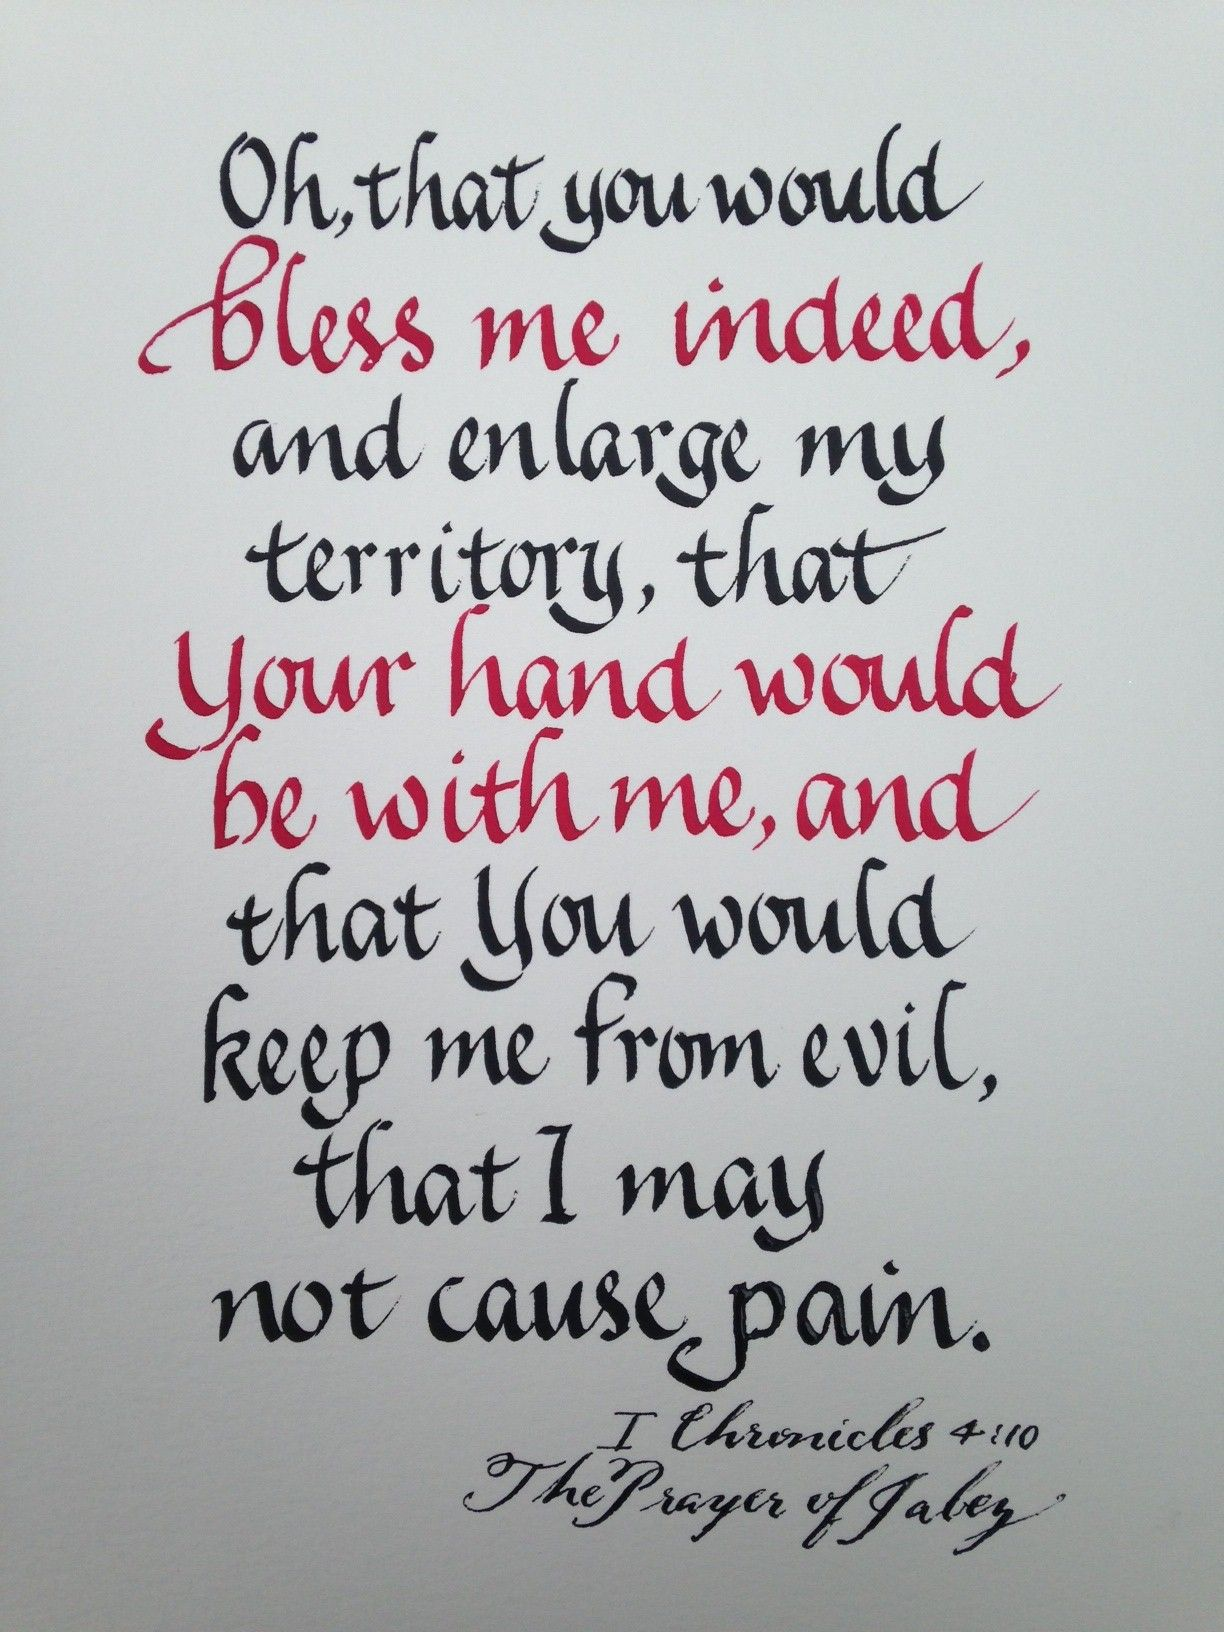 photo relating to Prayer of Jabez Printable referred to as The Prayer of Jabez I Chronicles 4:10 Bible Artwork Prayer